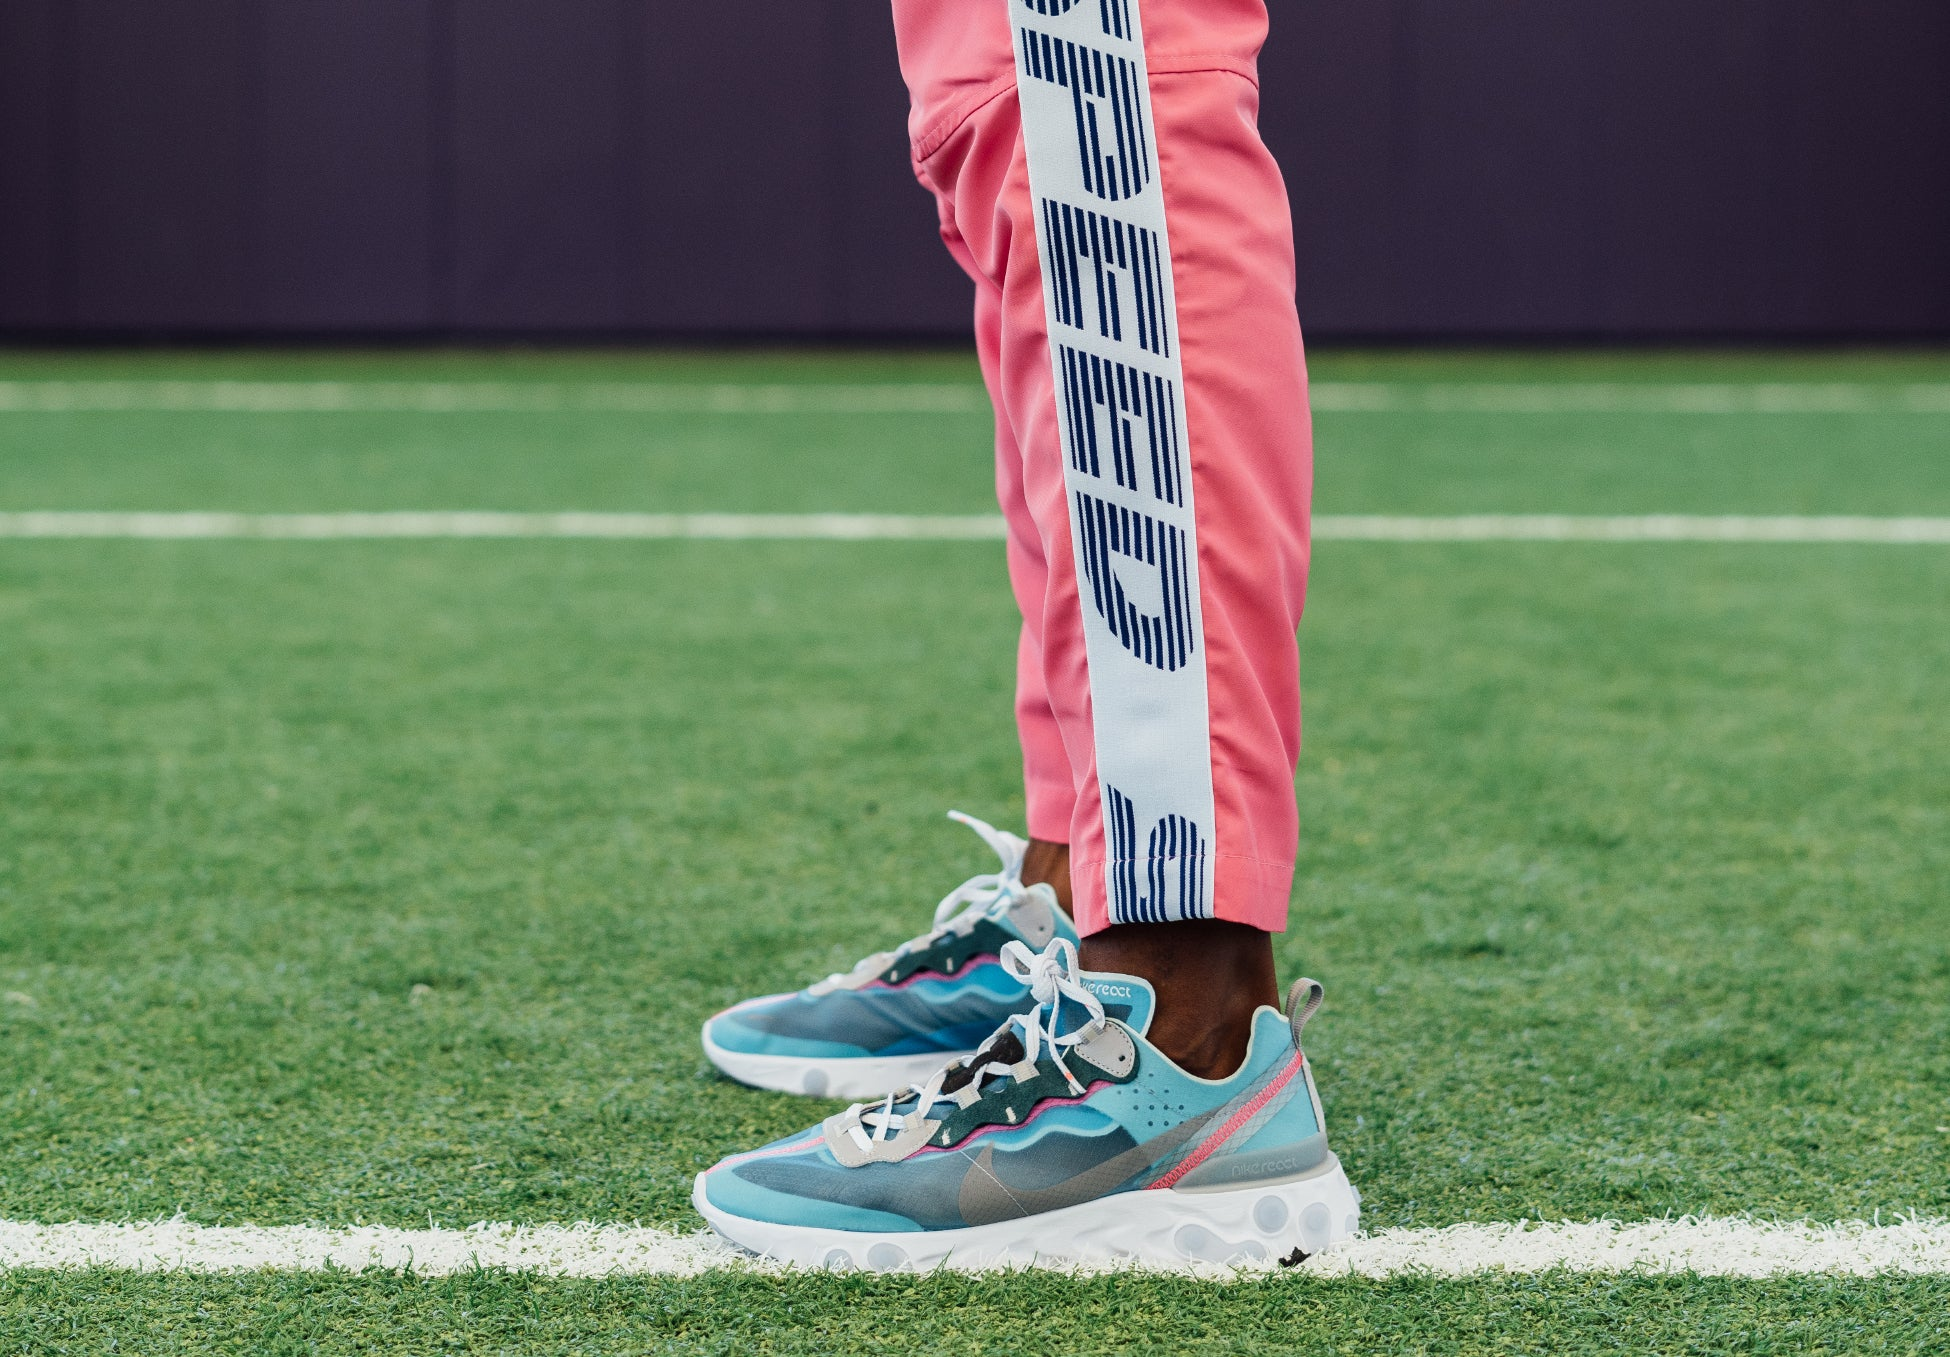 The-NFL-Draft-2019-Nashville-Tennessee-Rooted-sneakers-apparel